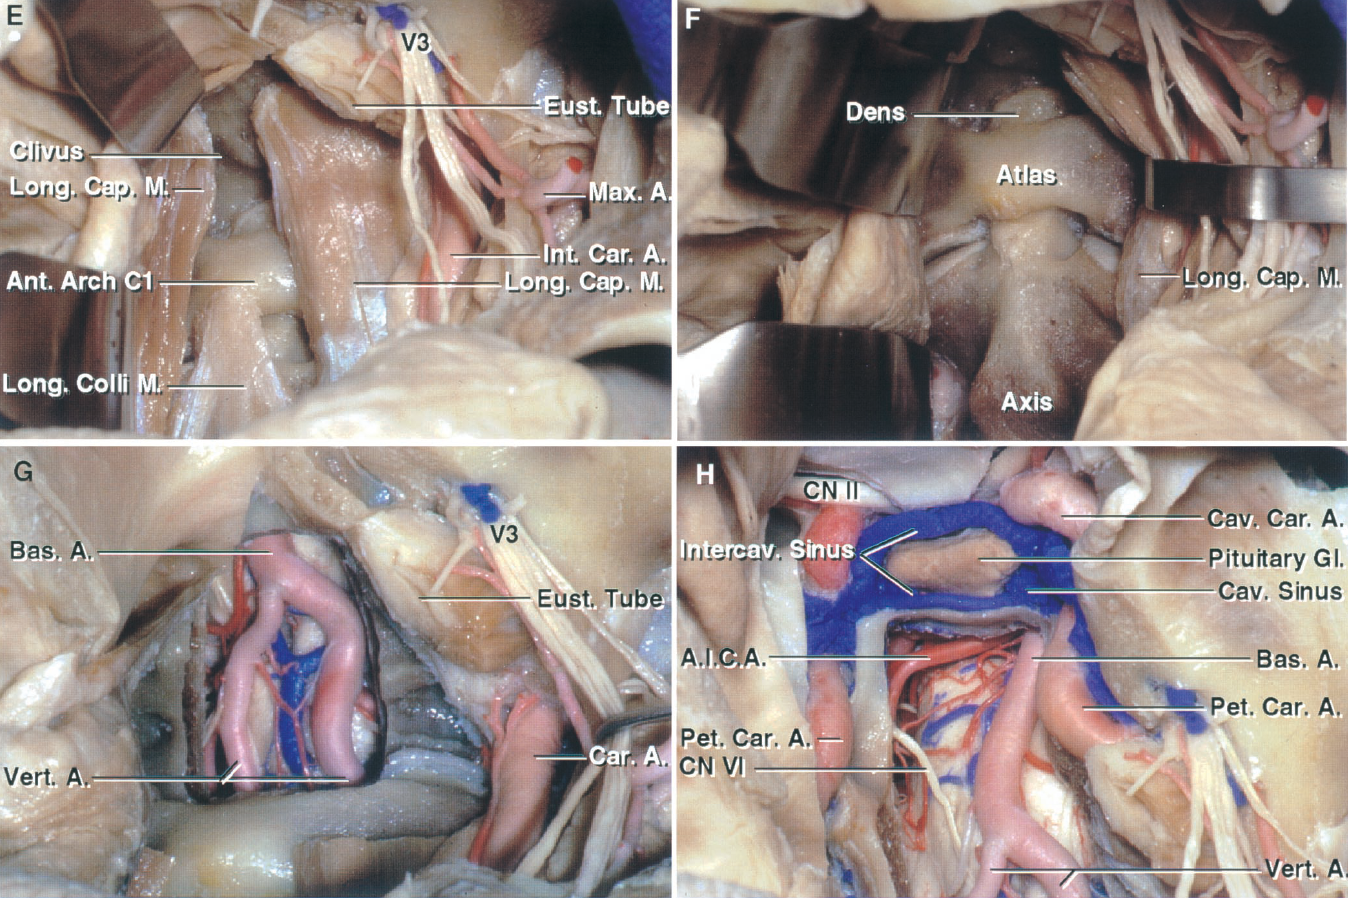 FIGURE 6.14. E–H. Lower maxillotomy route to the clivus and foramen magnum. E, the nasal mucosa has been opened and the posterior pharyngeal wall reflected to the opposite side. The longus capitis attachments have been separated from the clivus. F, the longus capitis and longus coli have been reflected laterally to expose the anterior arch of the atlas and the dens and body of the axis. G, the clivus and the dura have been opened to expose the medulla and vertebral arteries. H, the exposure has been extended upward by removing the anterior wall of the sphenoid sinus and sella. The terminal part of the petrous carotids limits the lateral exposure at the level of the clivus, and the cavernous carotids limit the lateral exposure at the level of the sphenoid sinus. The intercavernous sinuses interconnect the paired cavernous sinuses.